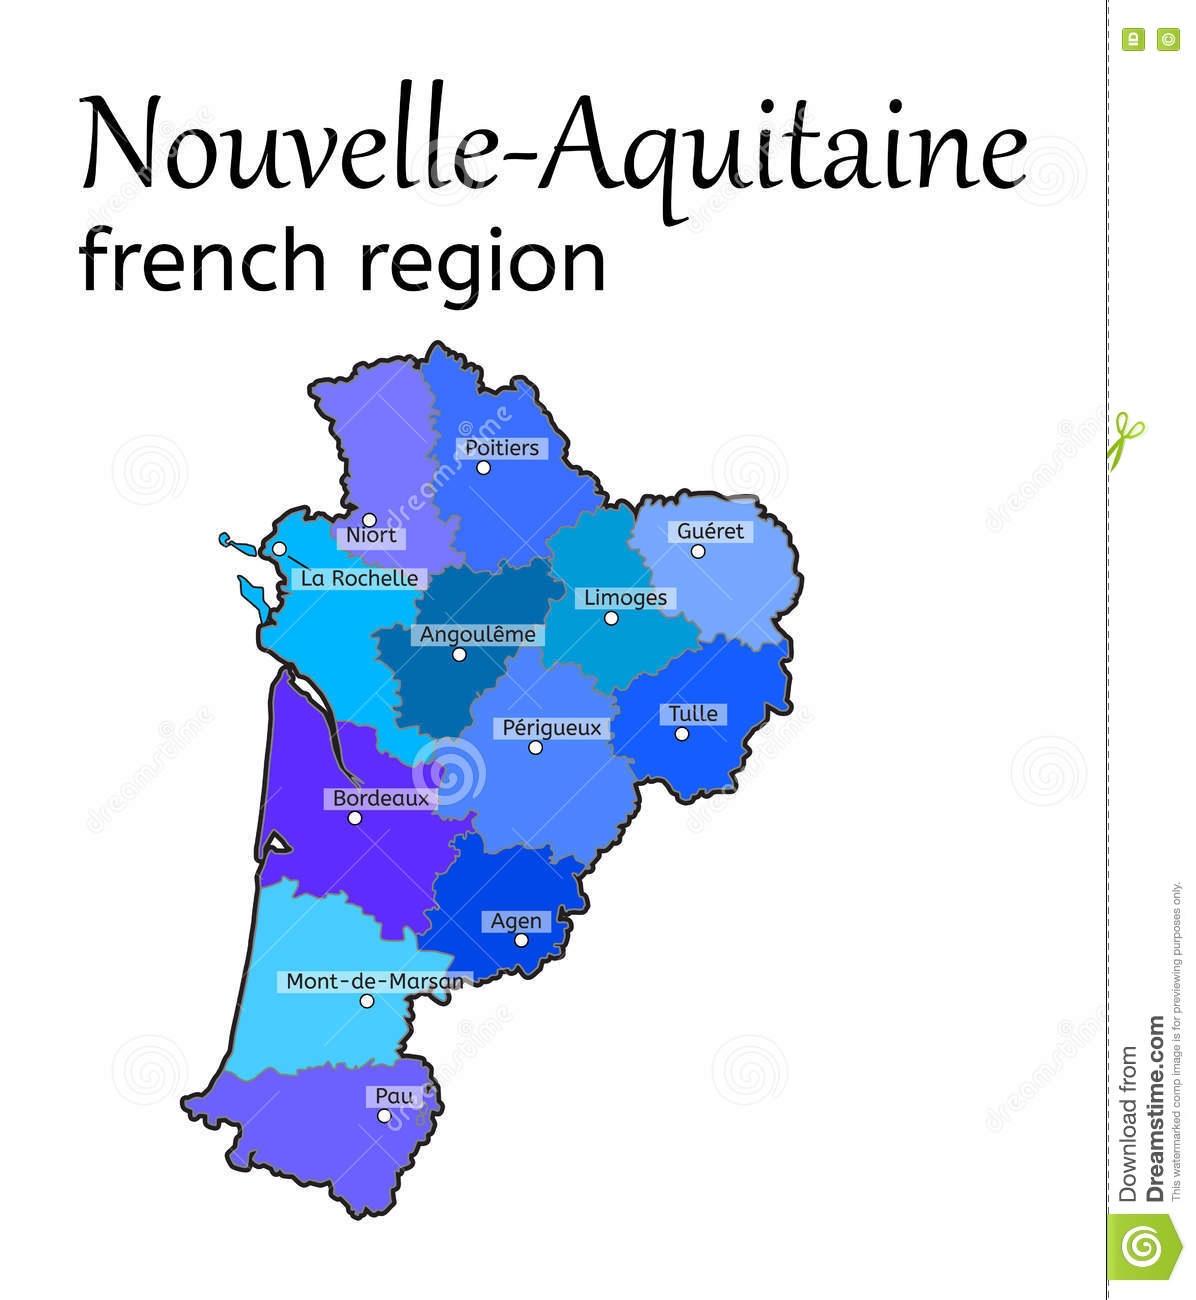 NouvelleAquitaine French Region Map Stock Vector Illustration of